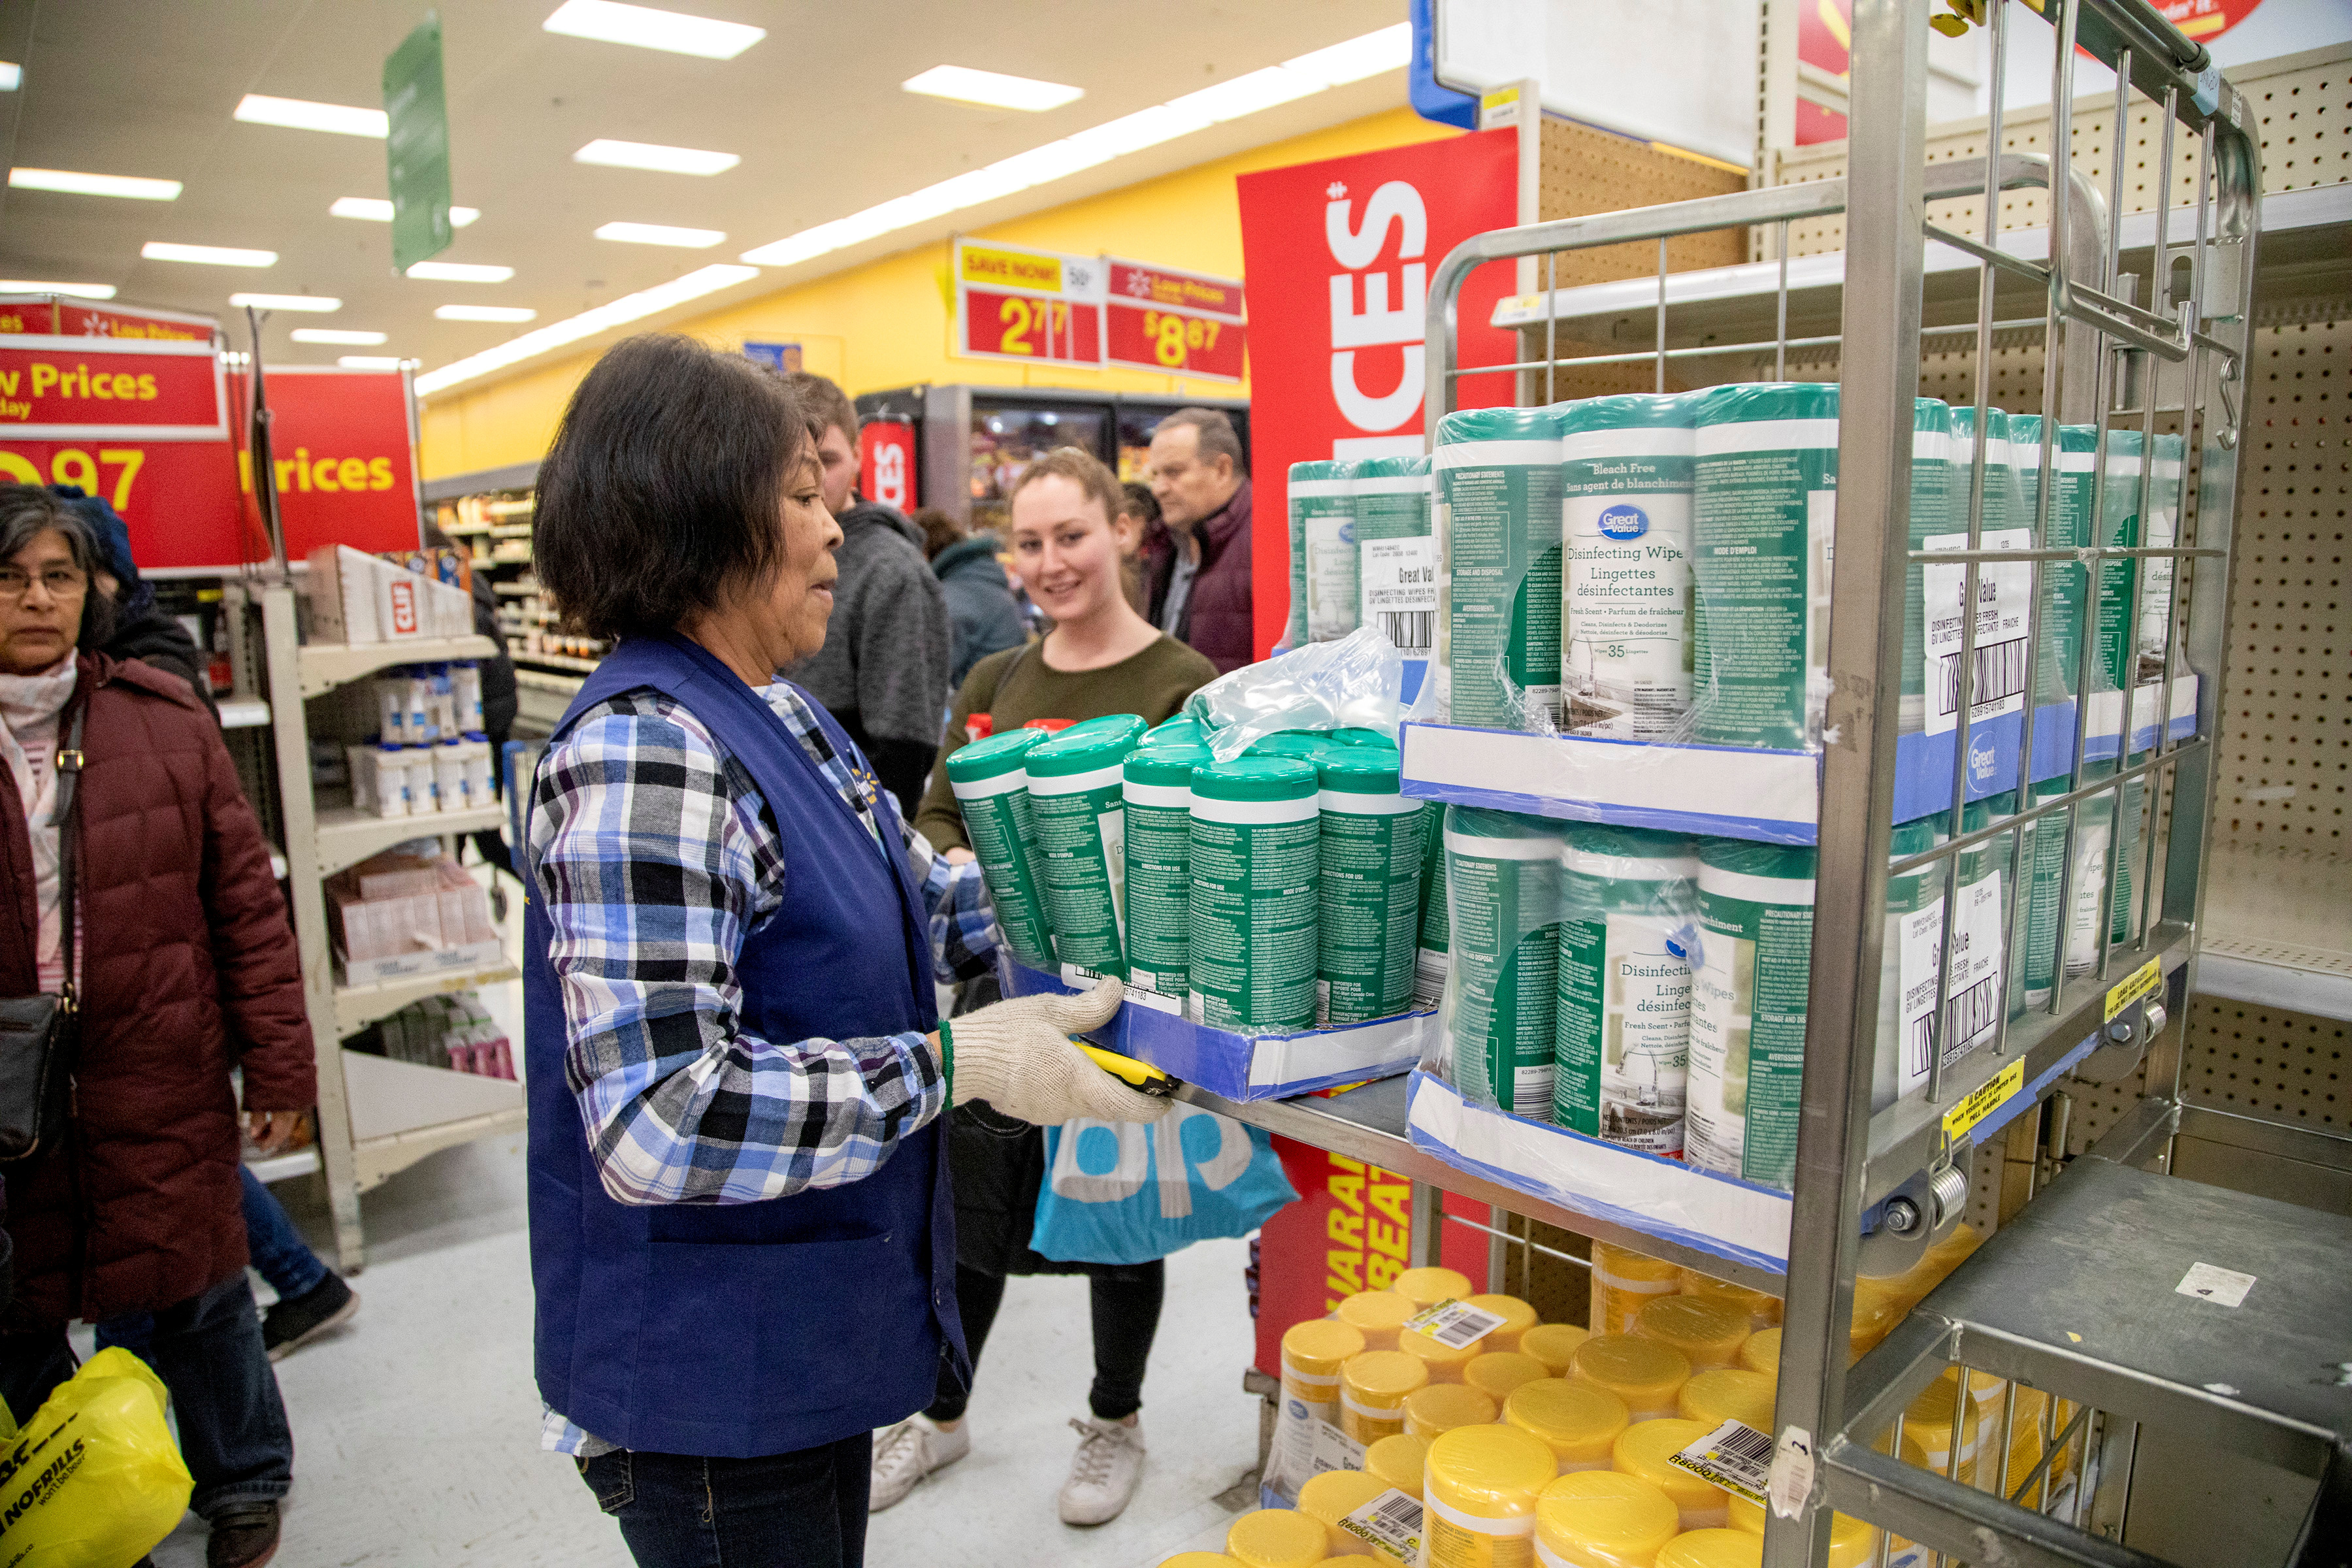 People wait as an employee restocks a shelf with disinfectant wipes as people shop at a Walmart Supercentre amid coronavirus fears spreading in Toronto, Ontario, Canada March 13, 2020.  REUTERS/Carlos Osorio/File Photo